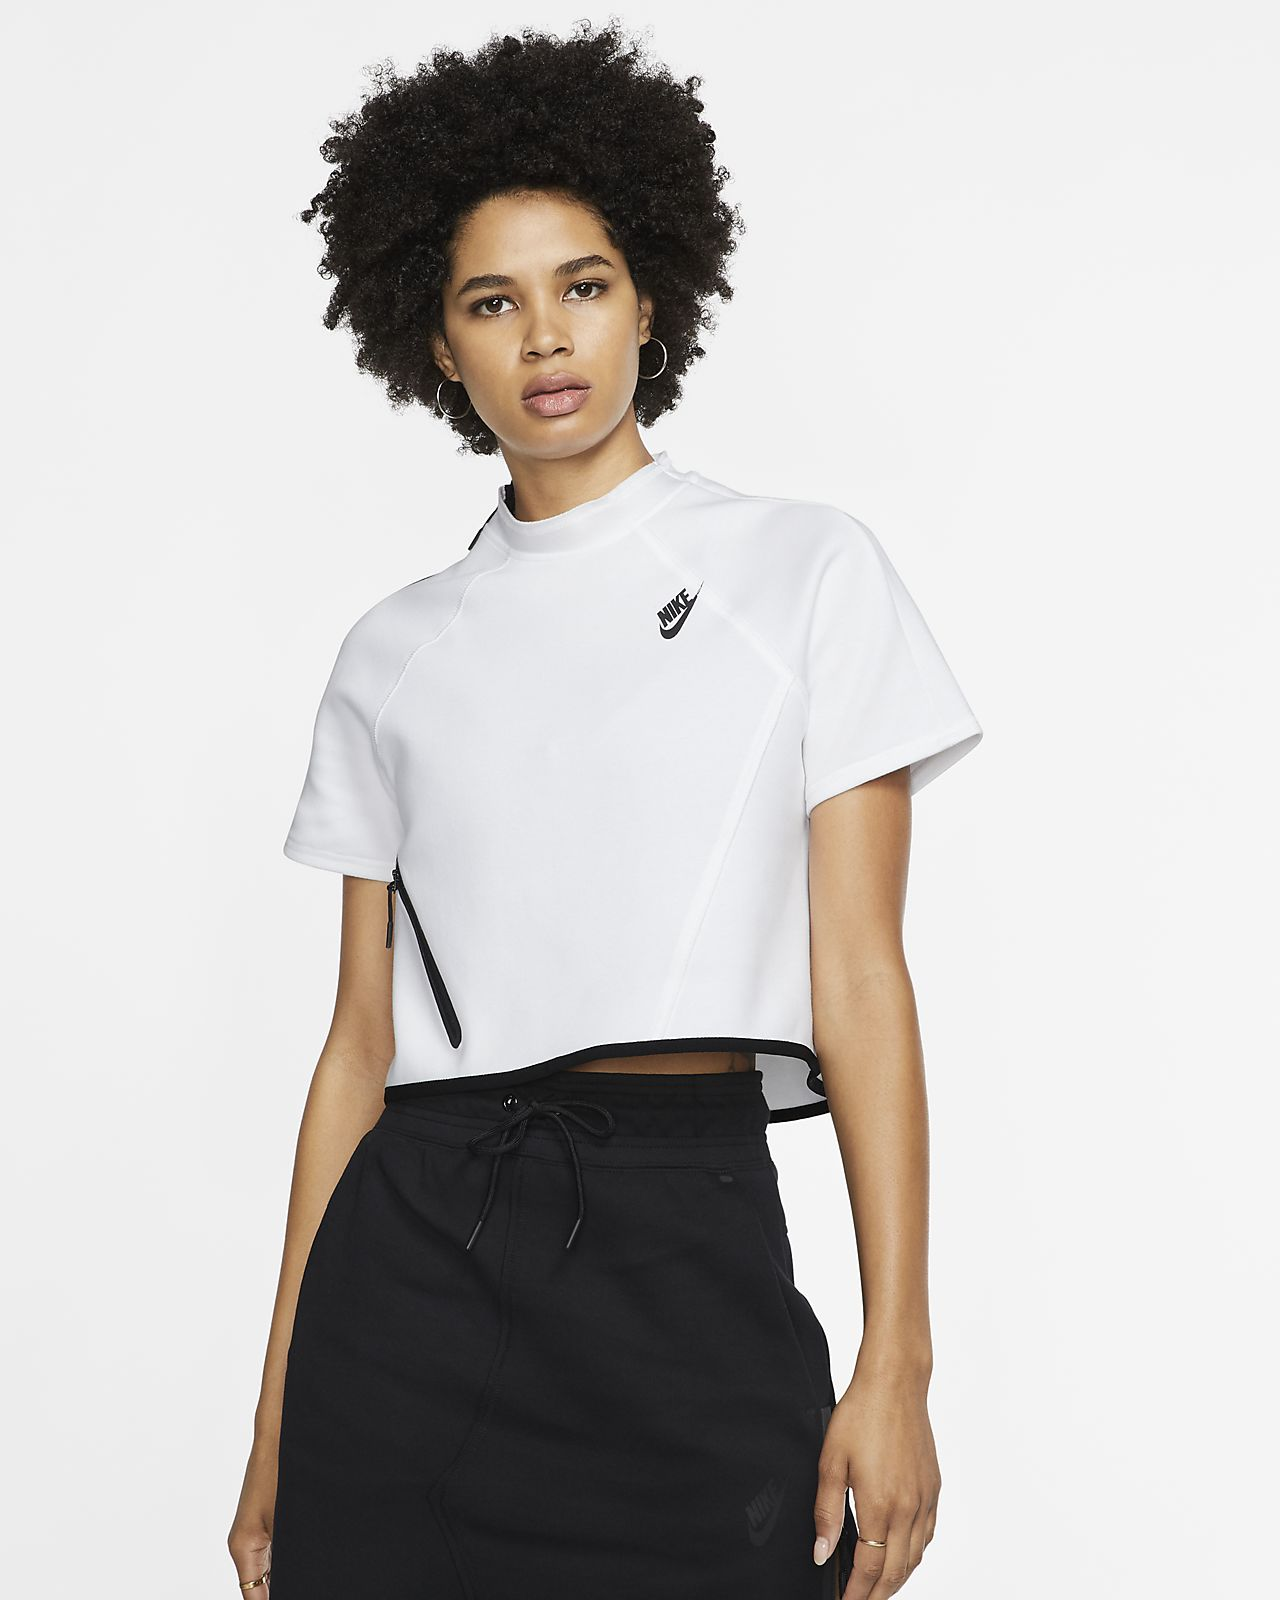 Nike Sportswear Tech Fleece Women's Short-Sleeve Top